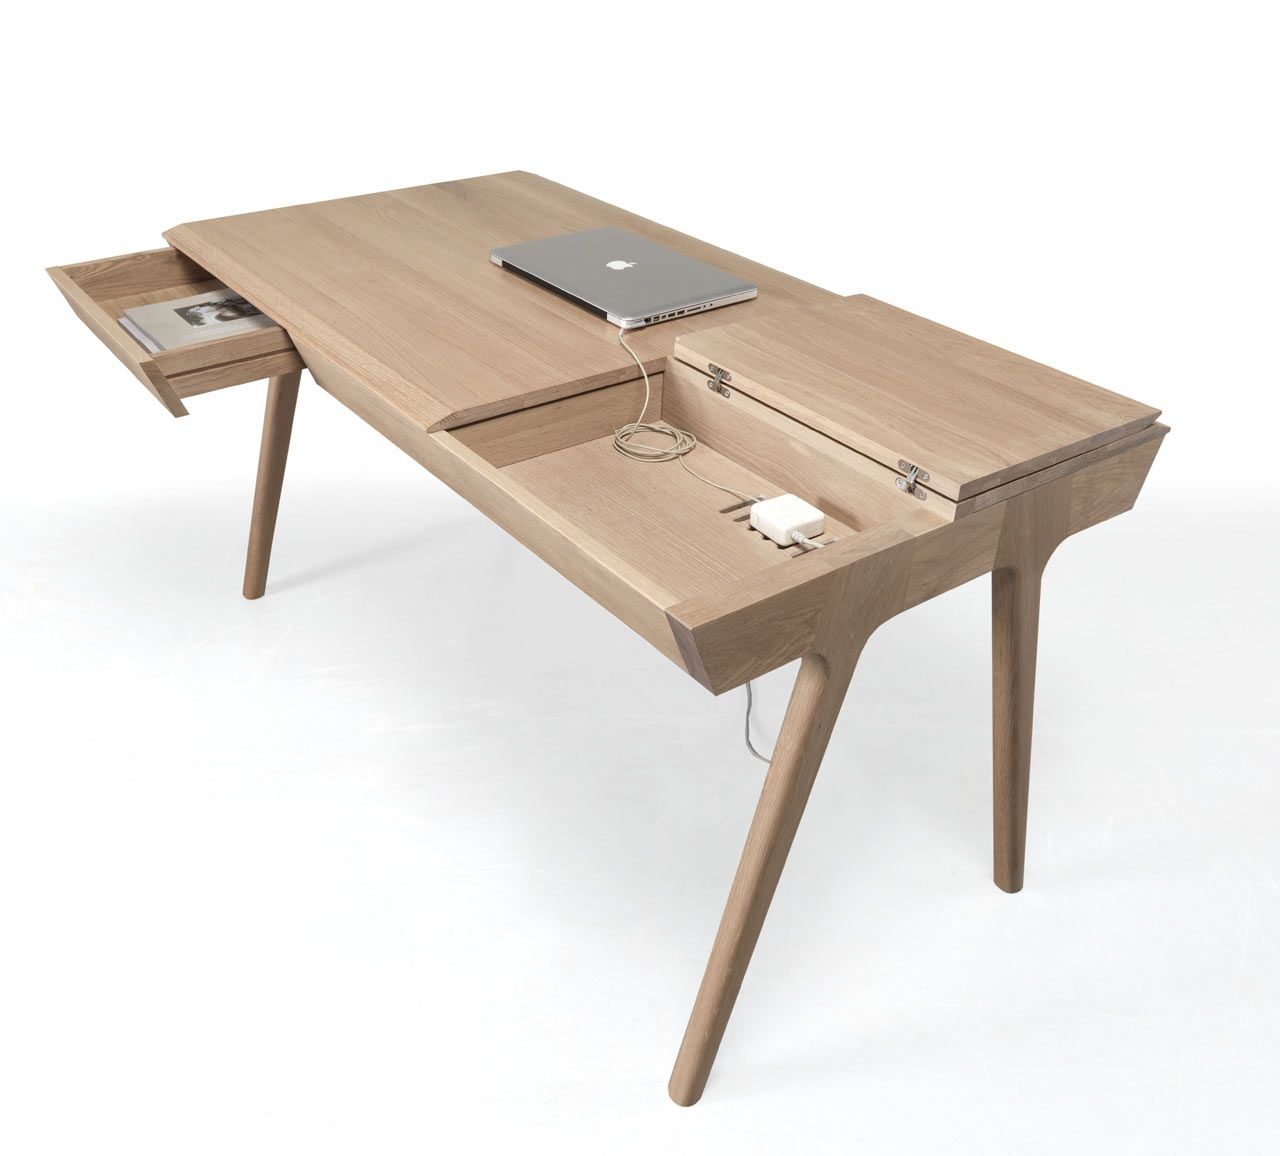 Metis A Solid Wood Desk With Plenty Of Storage Solid Wood Desk Compact Desks Desk Design